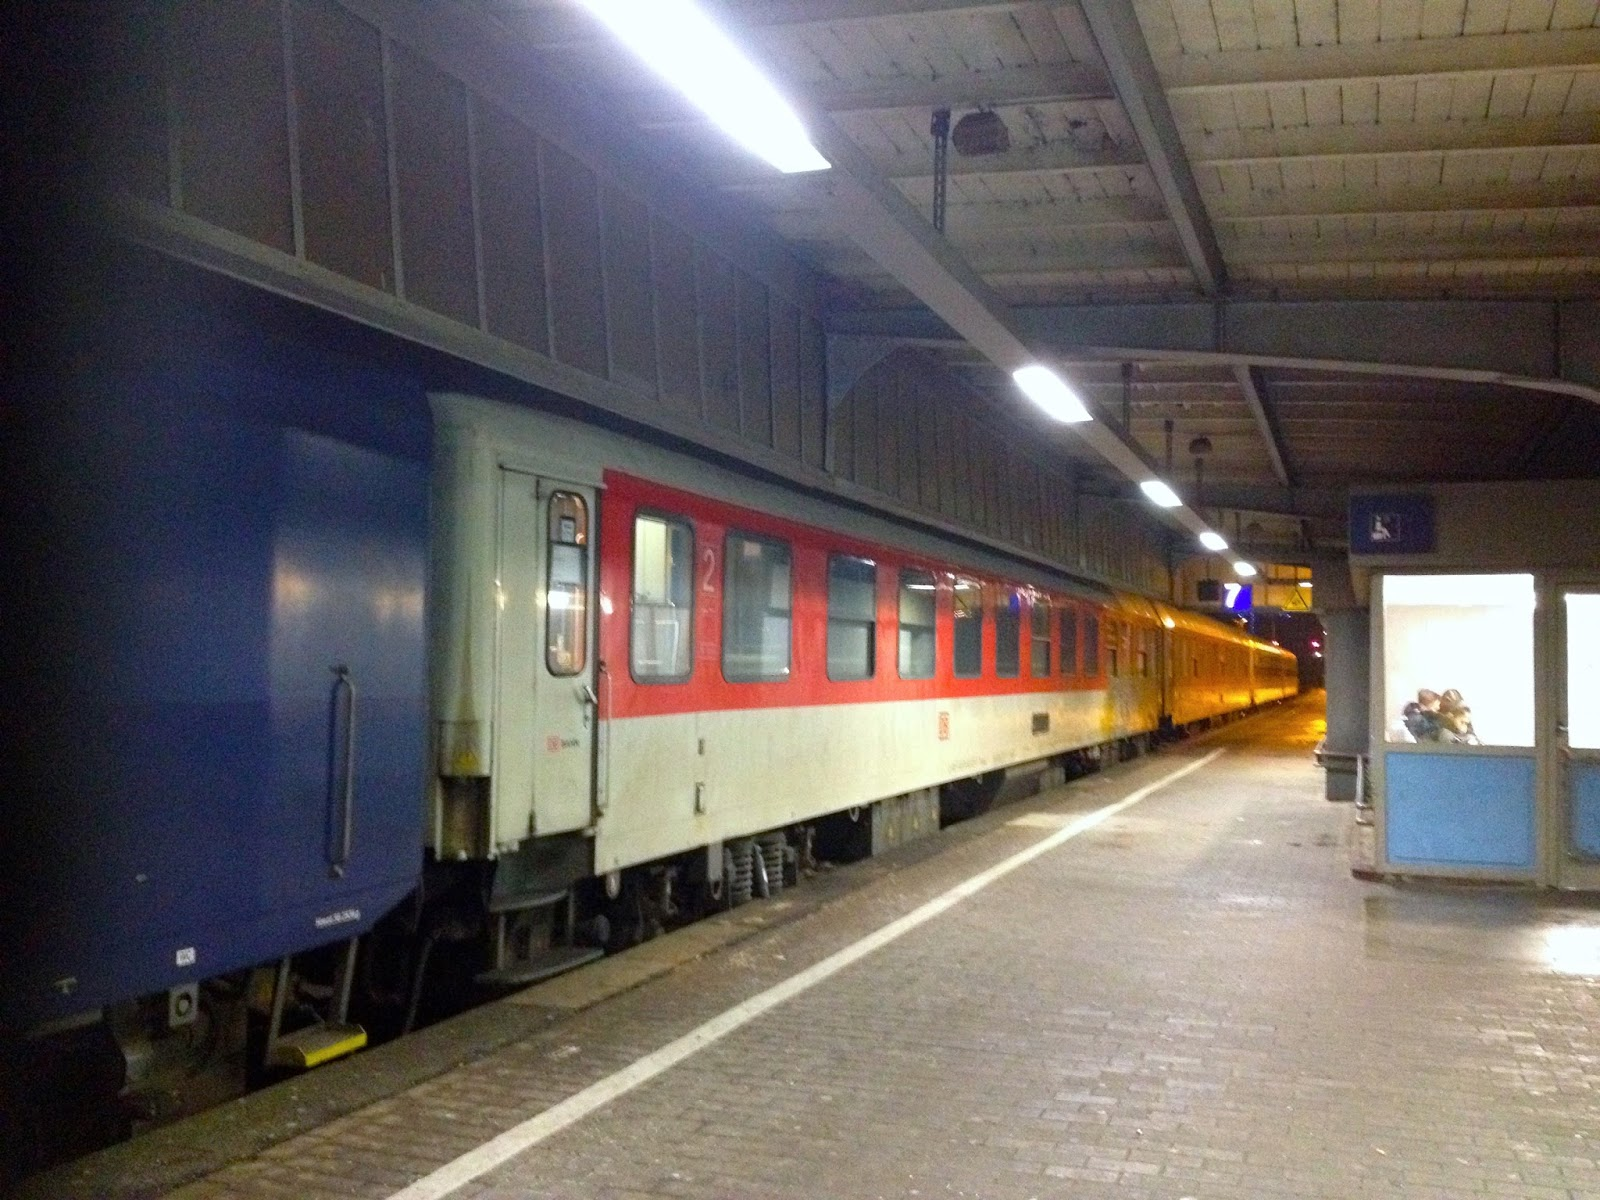 Naik Kereta ICE dan City Night Line dari Amsterdam ke Berlin-19 box waiting room oberhausen